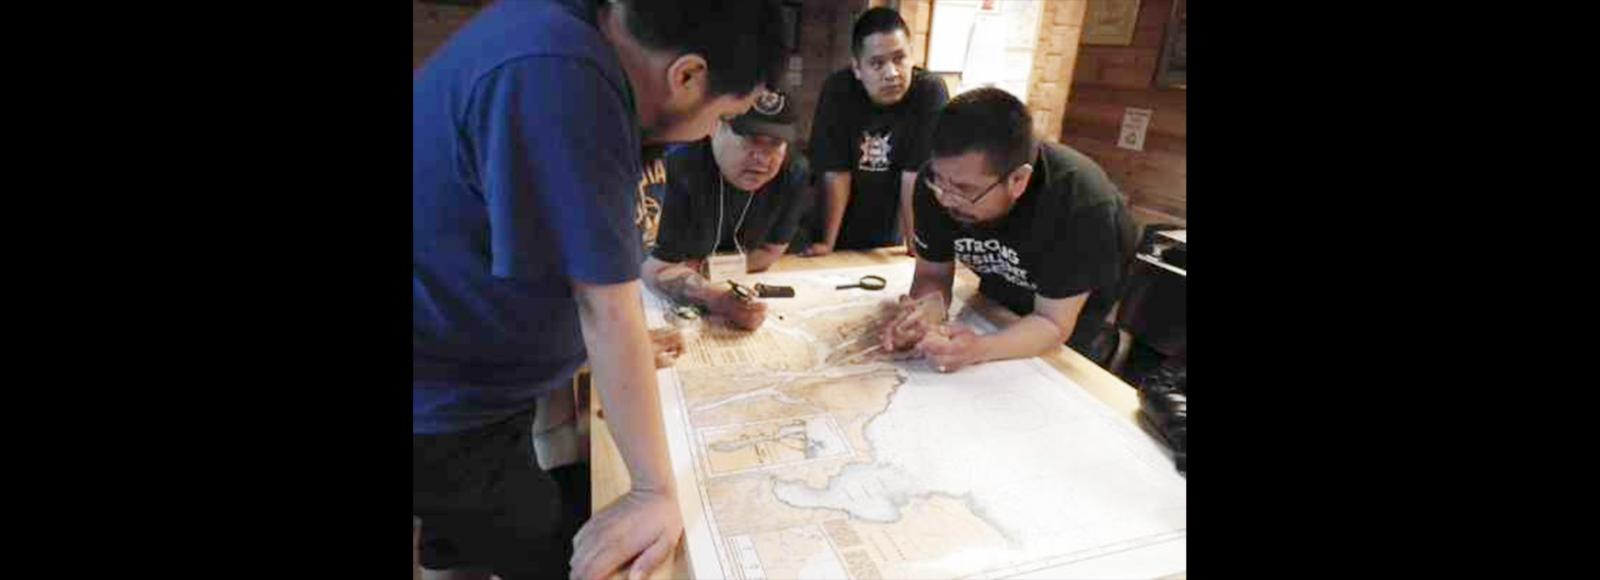 Four men in discussion as they around a map on a table